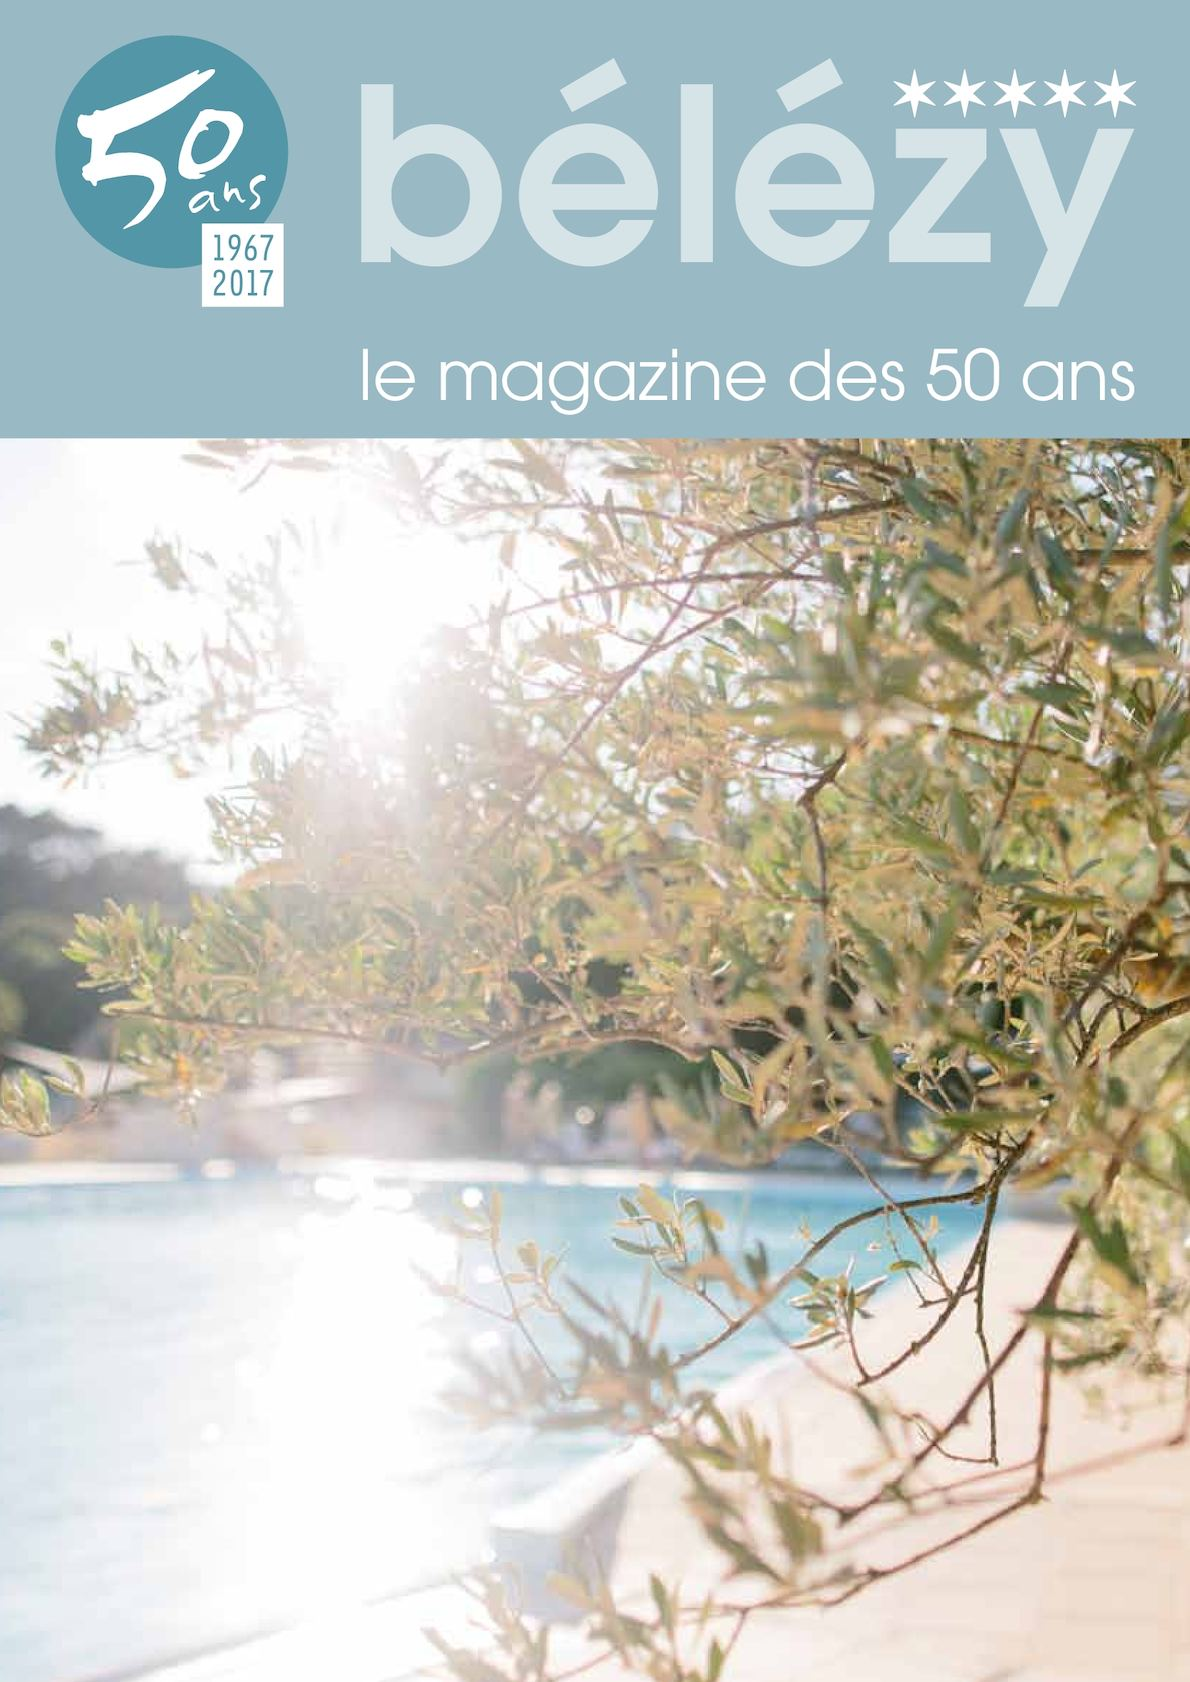 Magazine 50 Ans Belezy